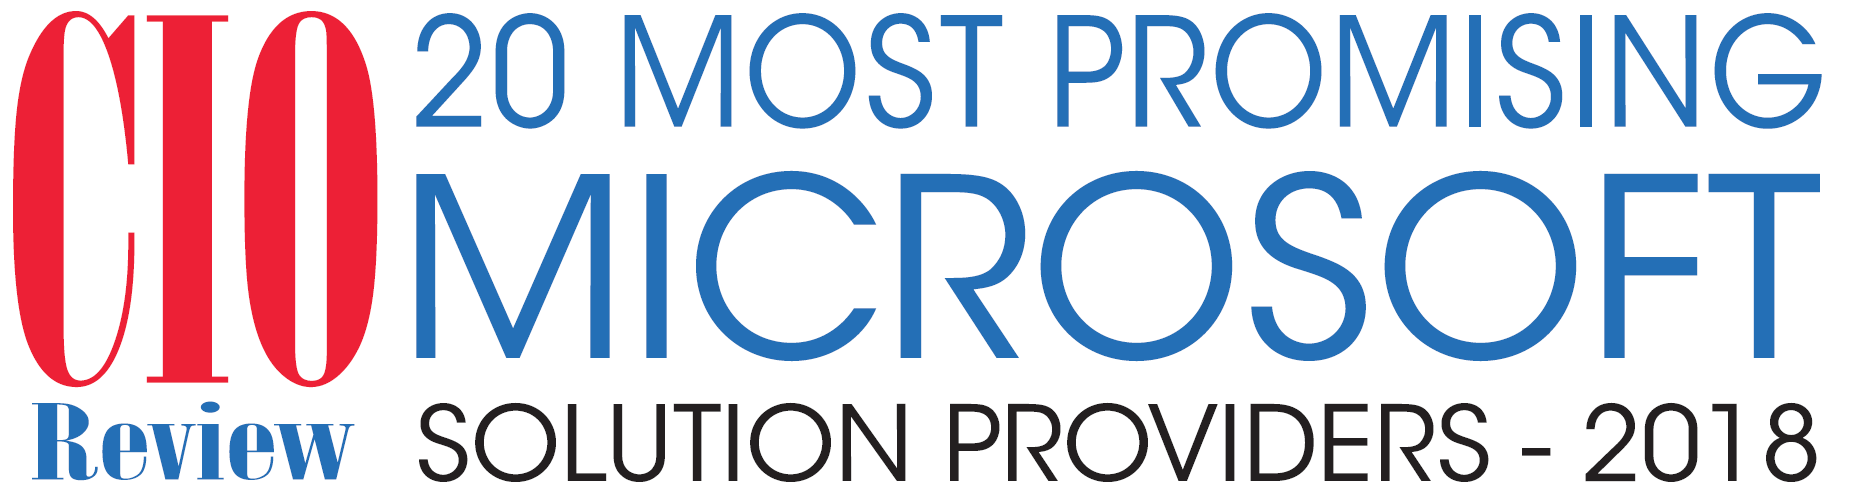 """TrnDigital Recognized as """"20 Most Promising Microsoft Solution Providers - 2018"""""""